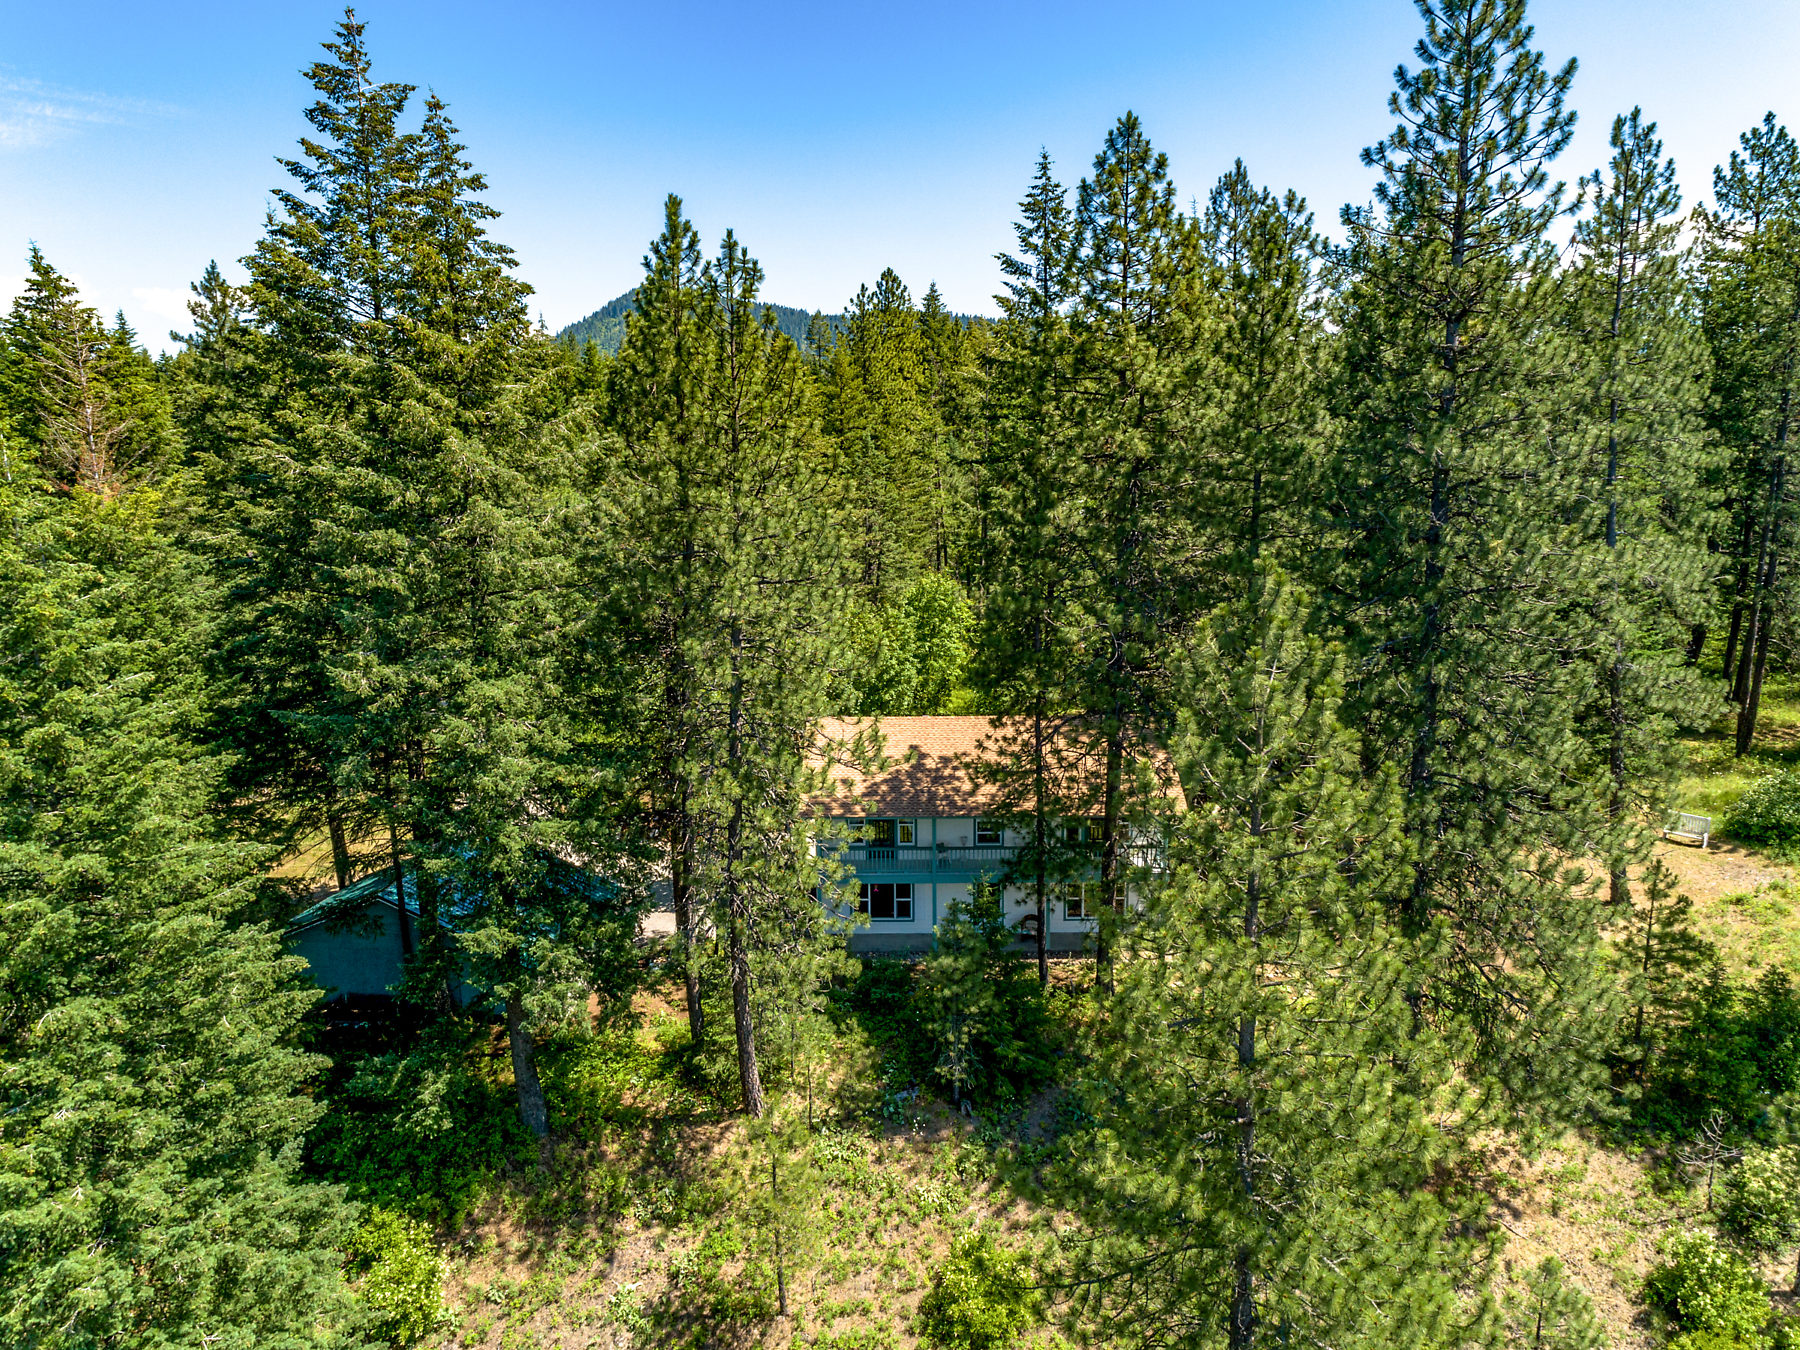 rathdrum homes for sale, rathdrum real estate, coeur d'alene real estate